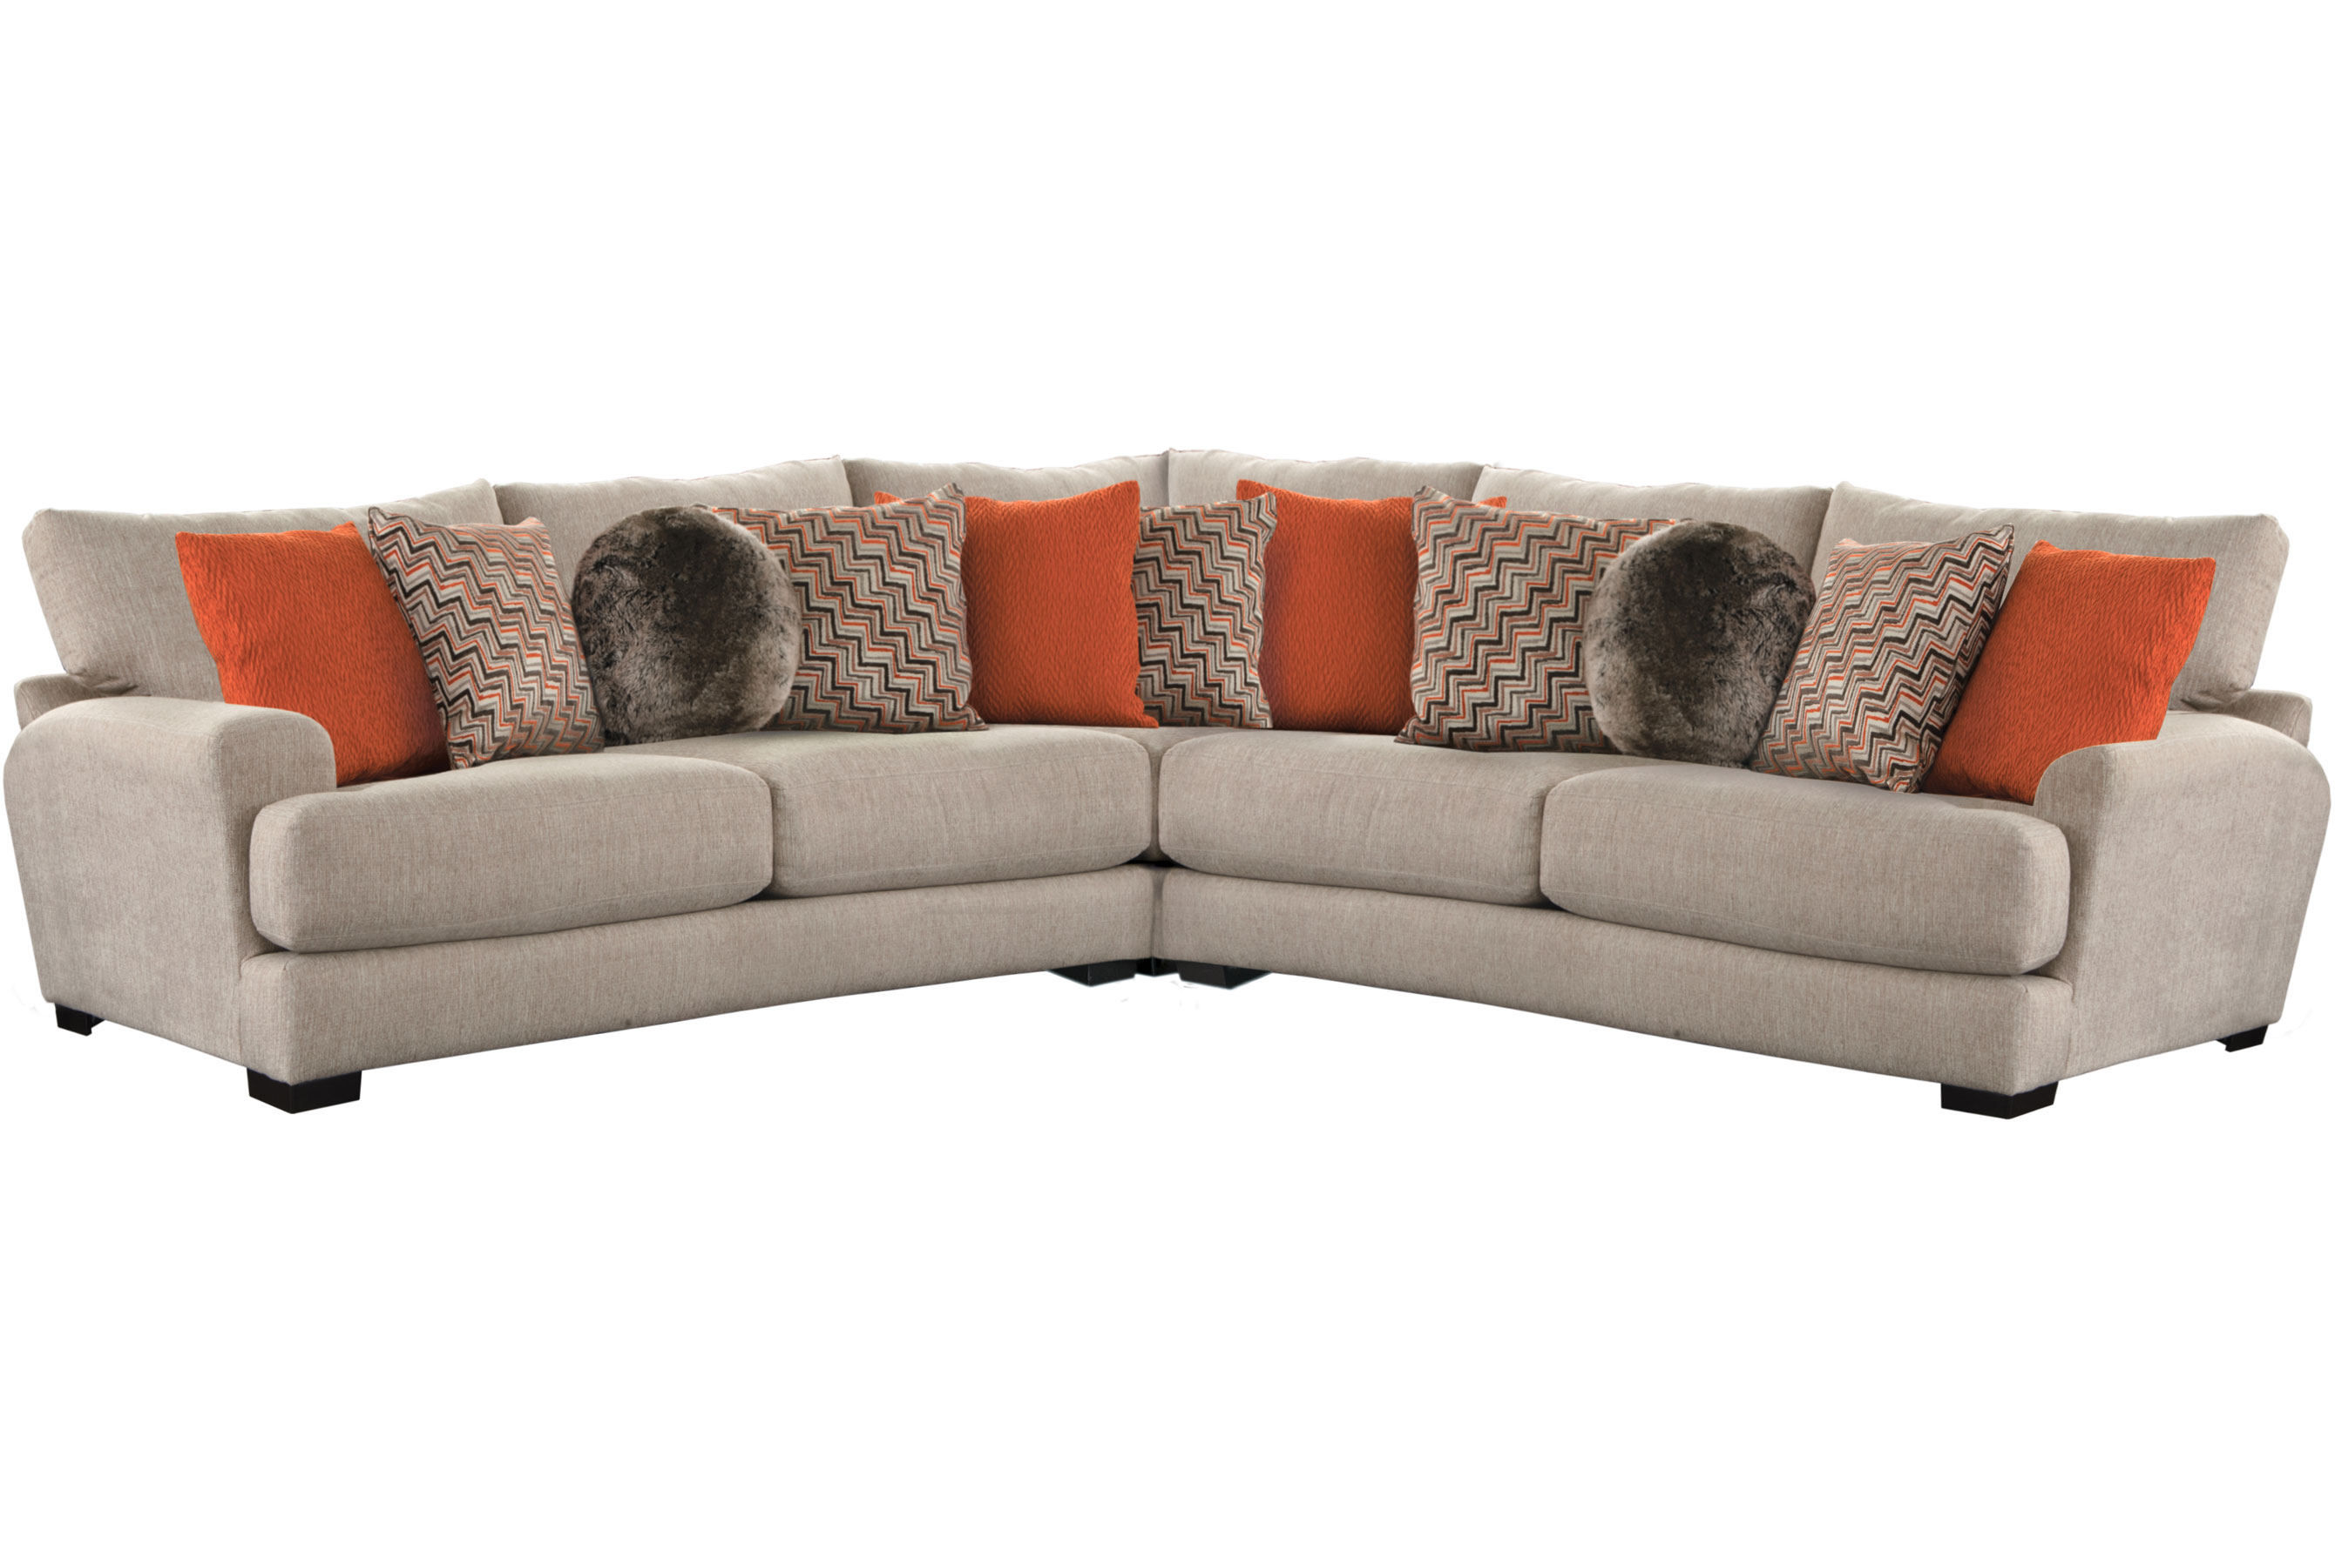 Strange Ava 3 Piece Sectional Includes Pillows Sofas And Inzonedesignstudio Interior Chair Design Inzonedesignstudiocom